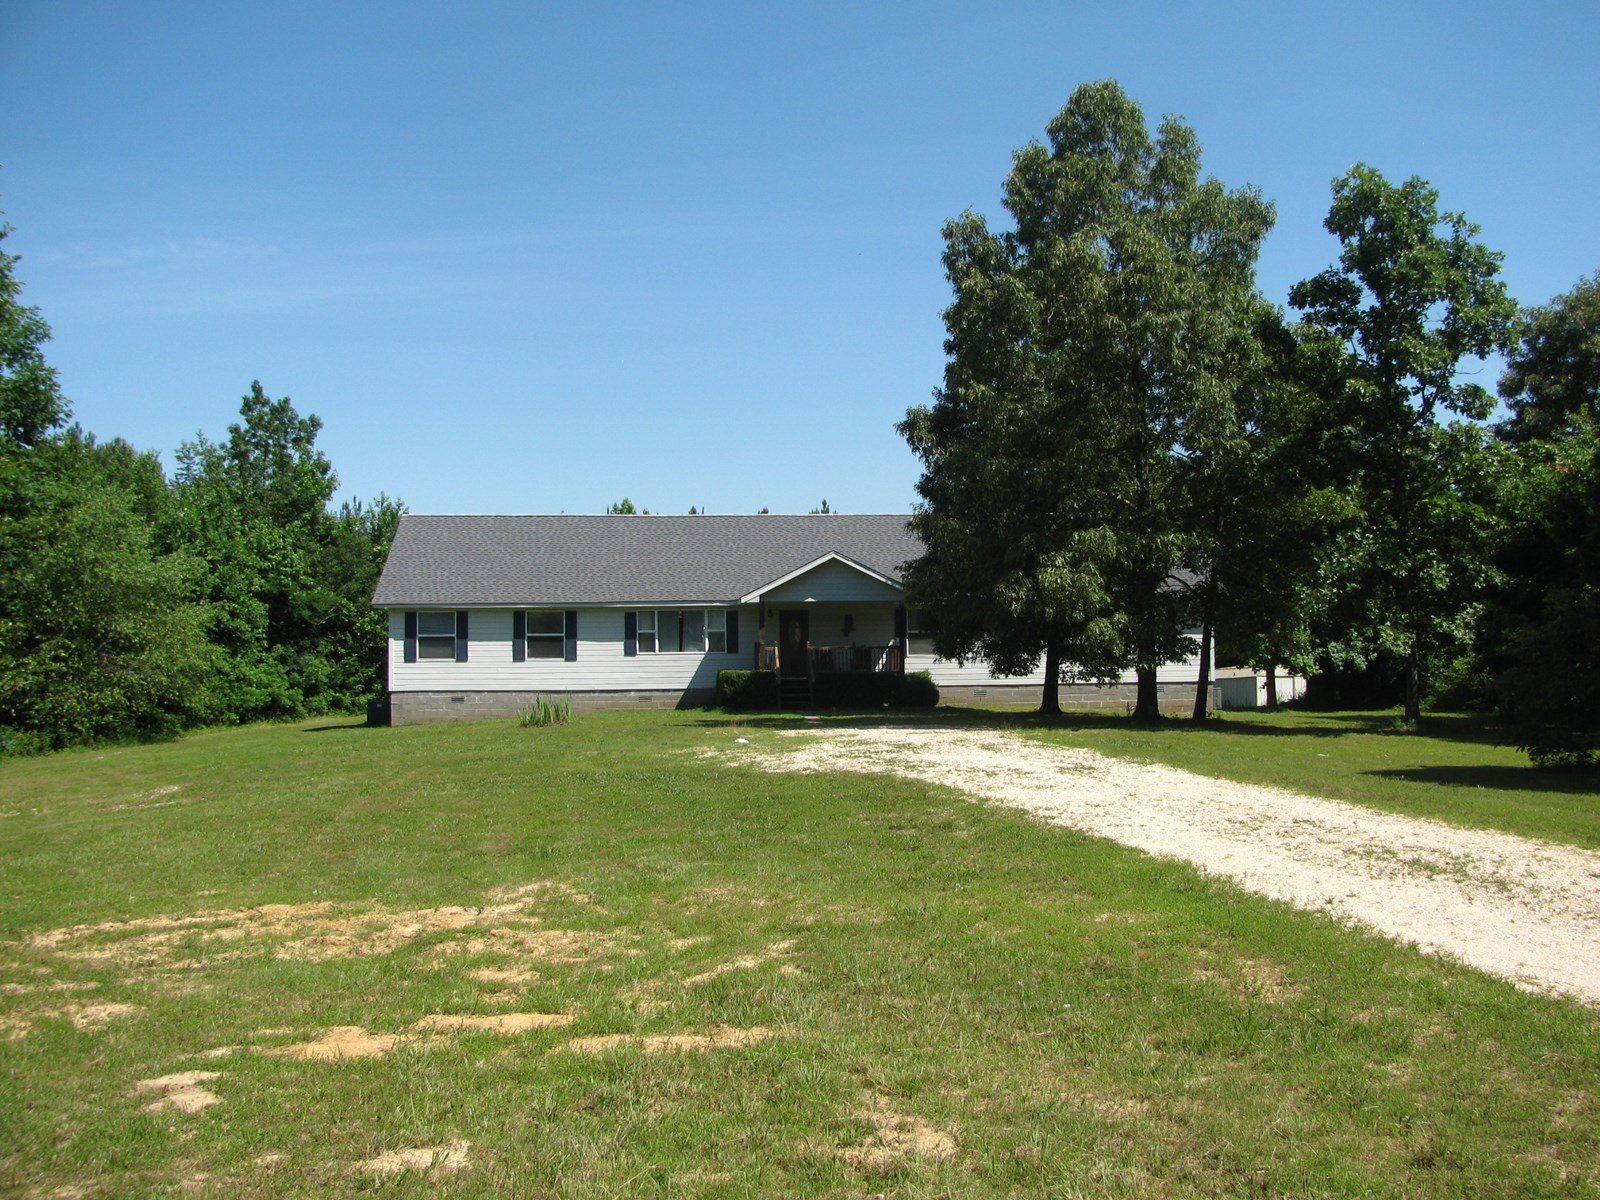 LARGE COUNTRY HOME ON 5 ACRES IN ADAMSVILLE, TN